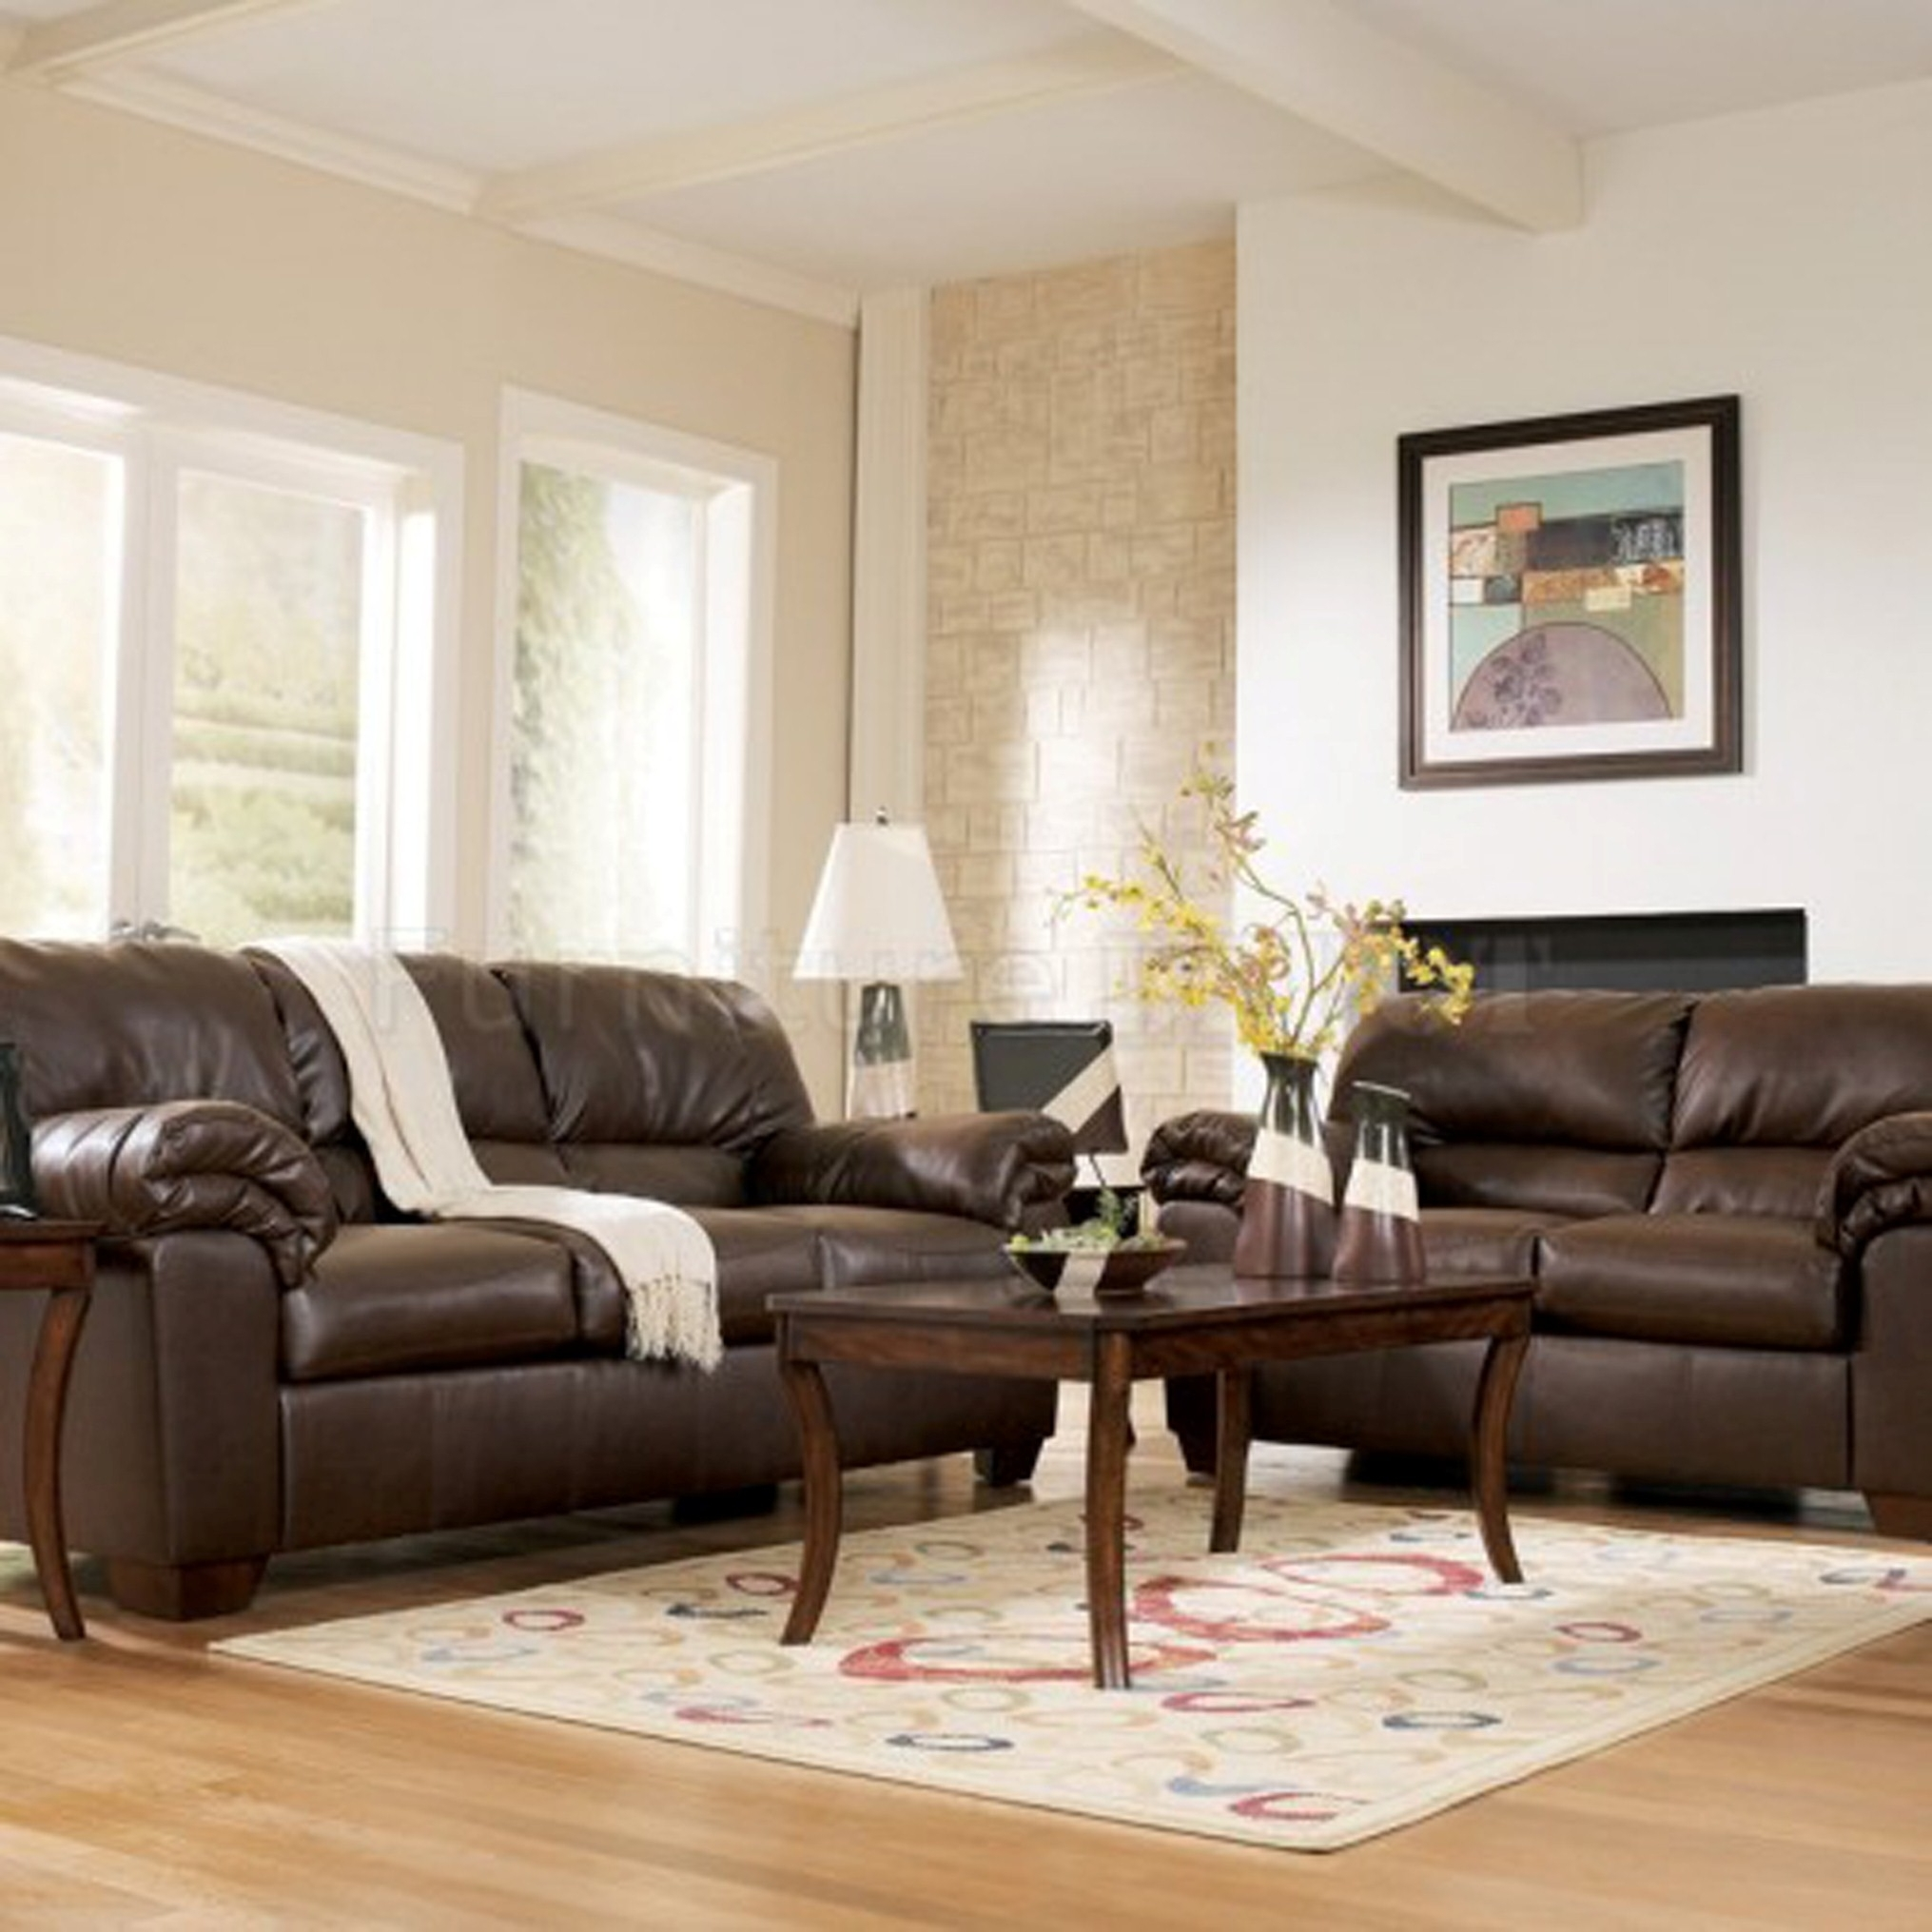 Living room ideas brown leather sofa for Living room sofa ideas